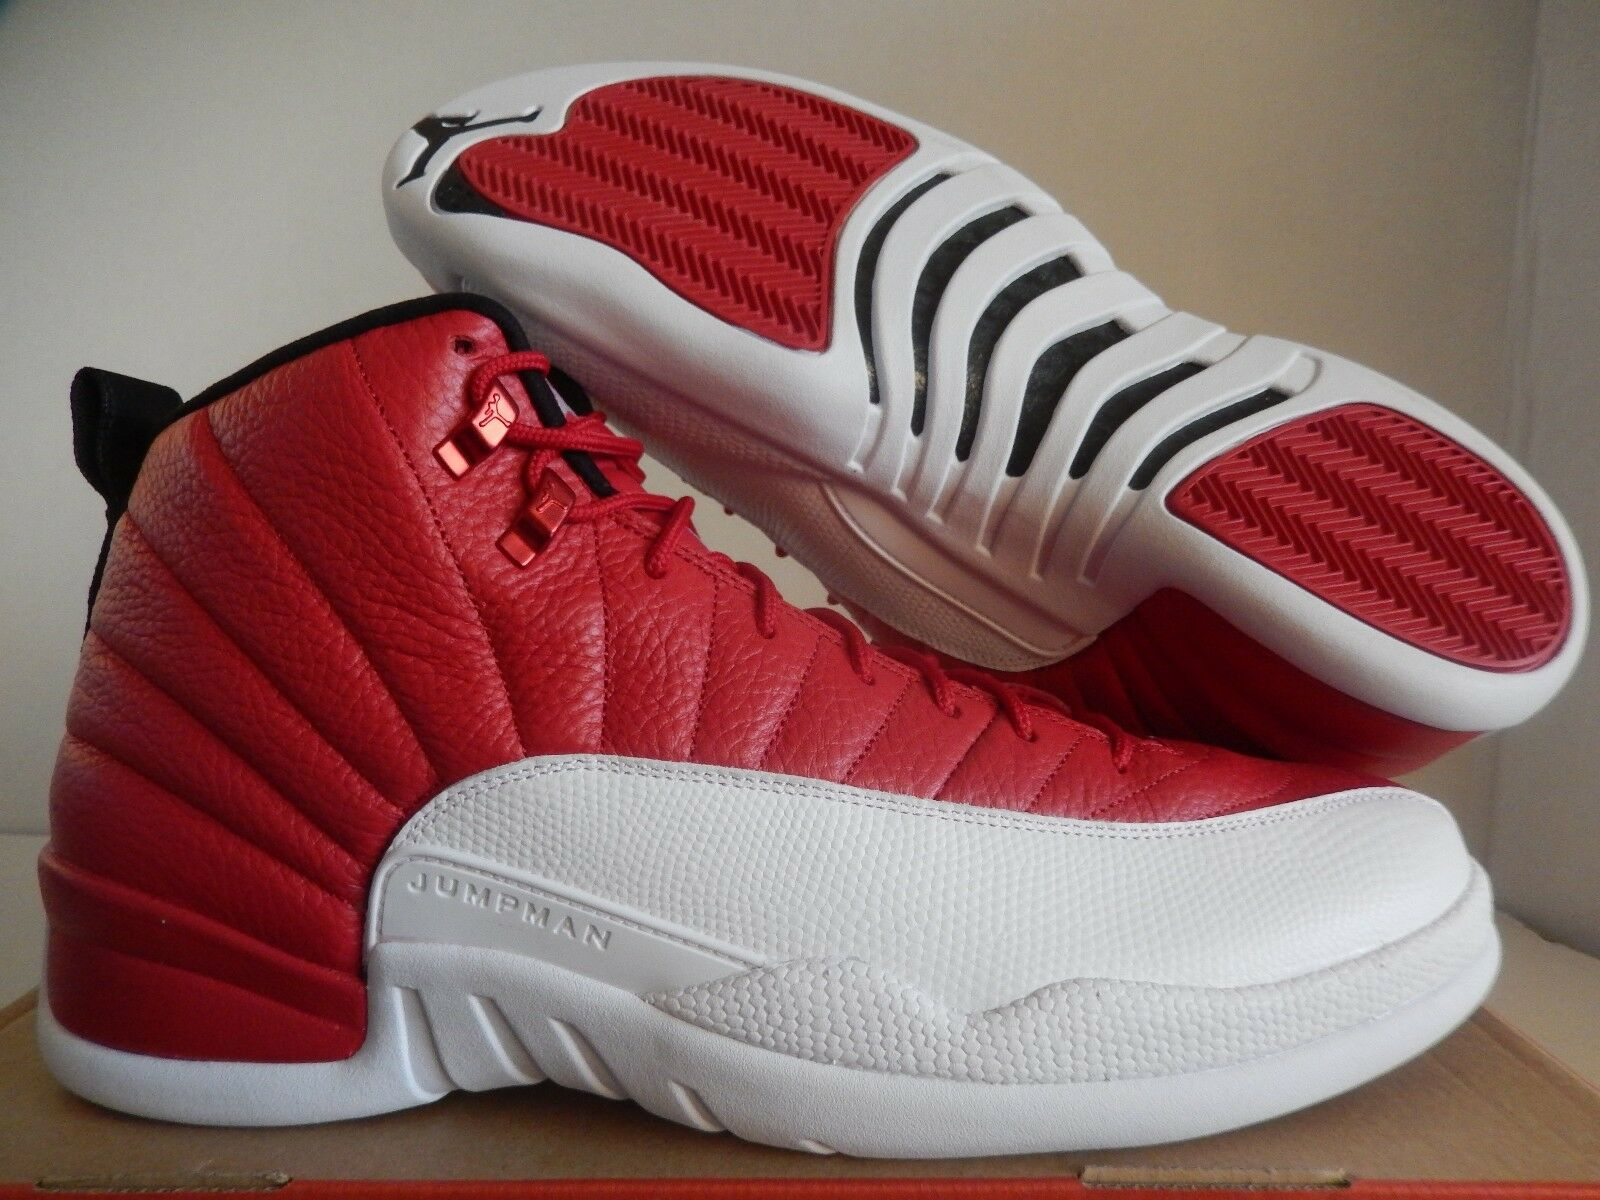 NIKE AIR JORDAN 12 RETRO ALTERNATE GYM RED-WHITE-BLACK SZ 15 [130690-600]